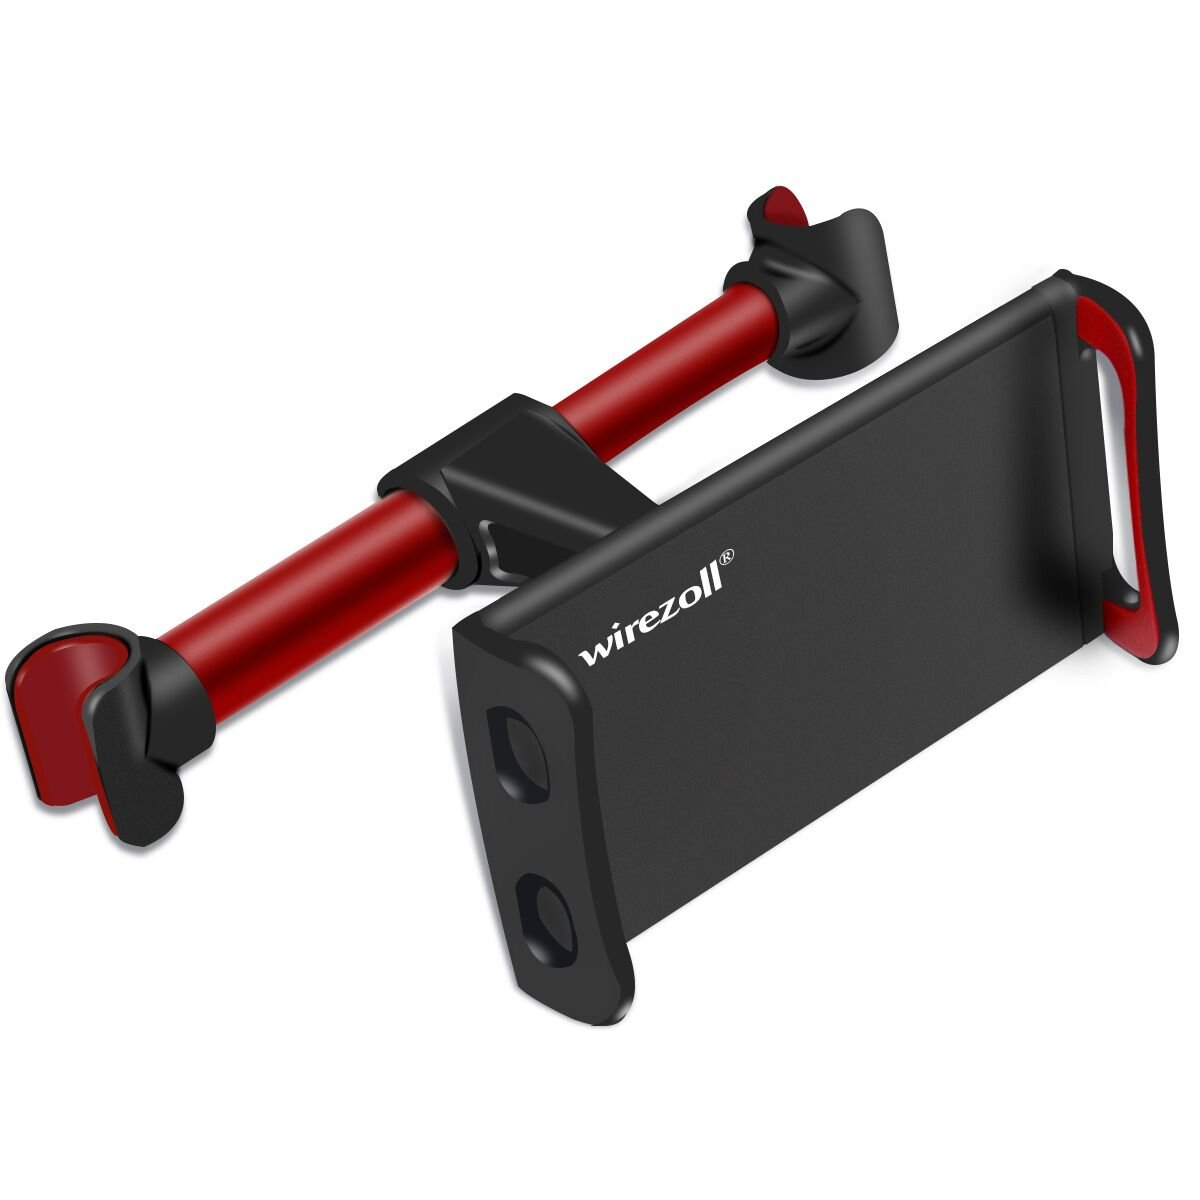 """Car Headrest Mount, Wirezoll 360° Rotation Adjustable Car Seat Tablet Holder for iPad/Samsung Galaxy Tabs/Amazon Kindle Fire HD/Nintendo Switch/Other Devices 4""""-10.1"""" (Red)"""